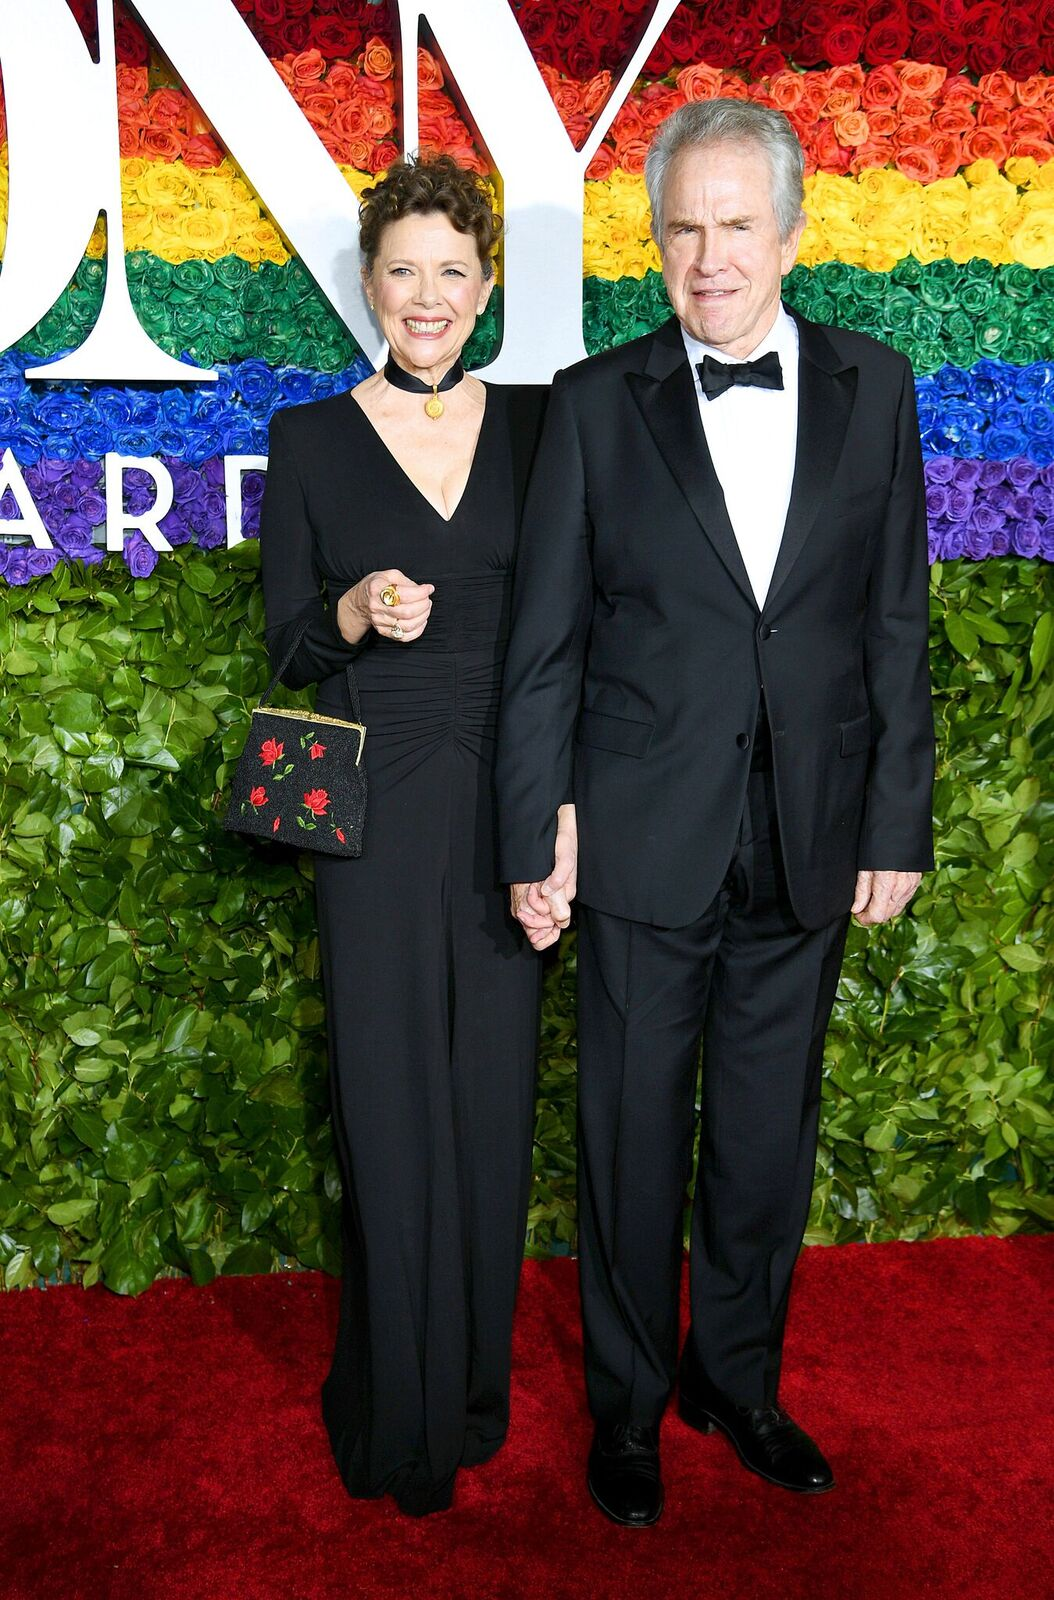 Annette Bening and Warren Beatty attends the 73rd Annual Tony Awards at Radio City Music Hall on June 09, 2019 in New York City | Photo: Getty Images